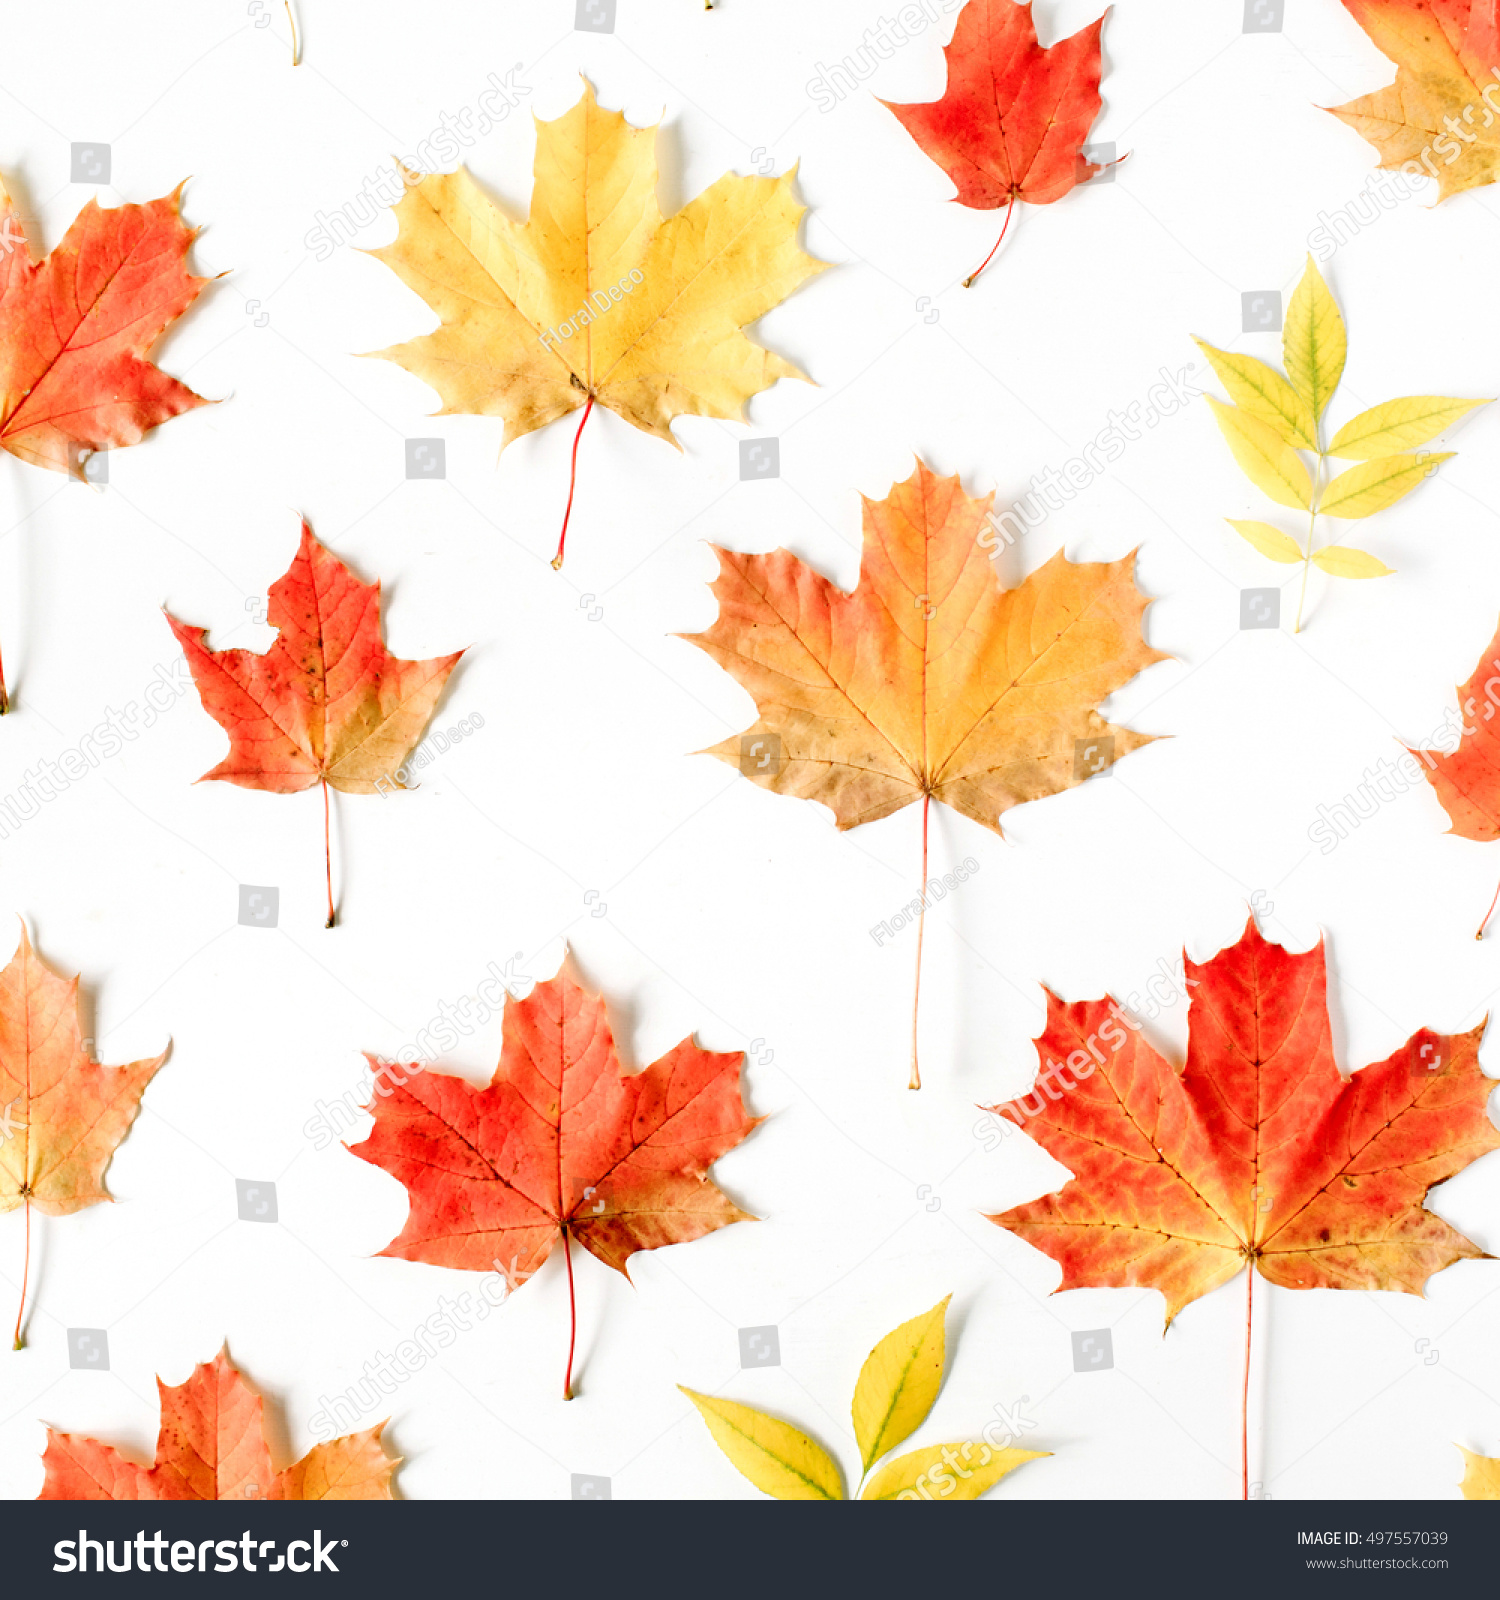 red leaves wallpaper pattern - photo #10